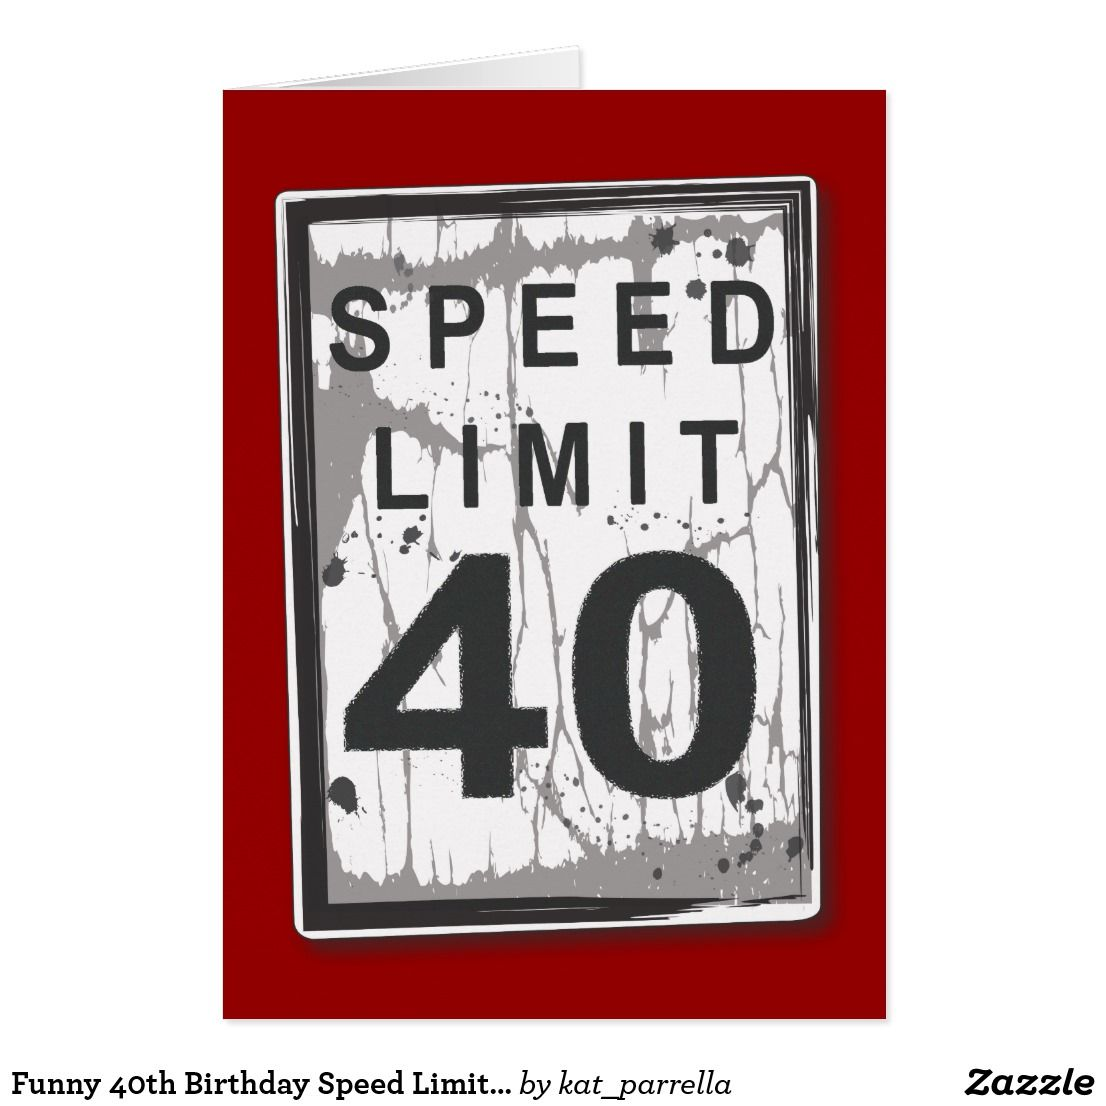 Funny 40th Birthday Speed Limit Card | Pinterest | Funny 40th ...